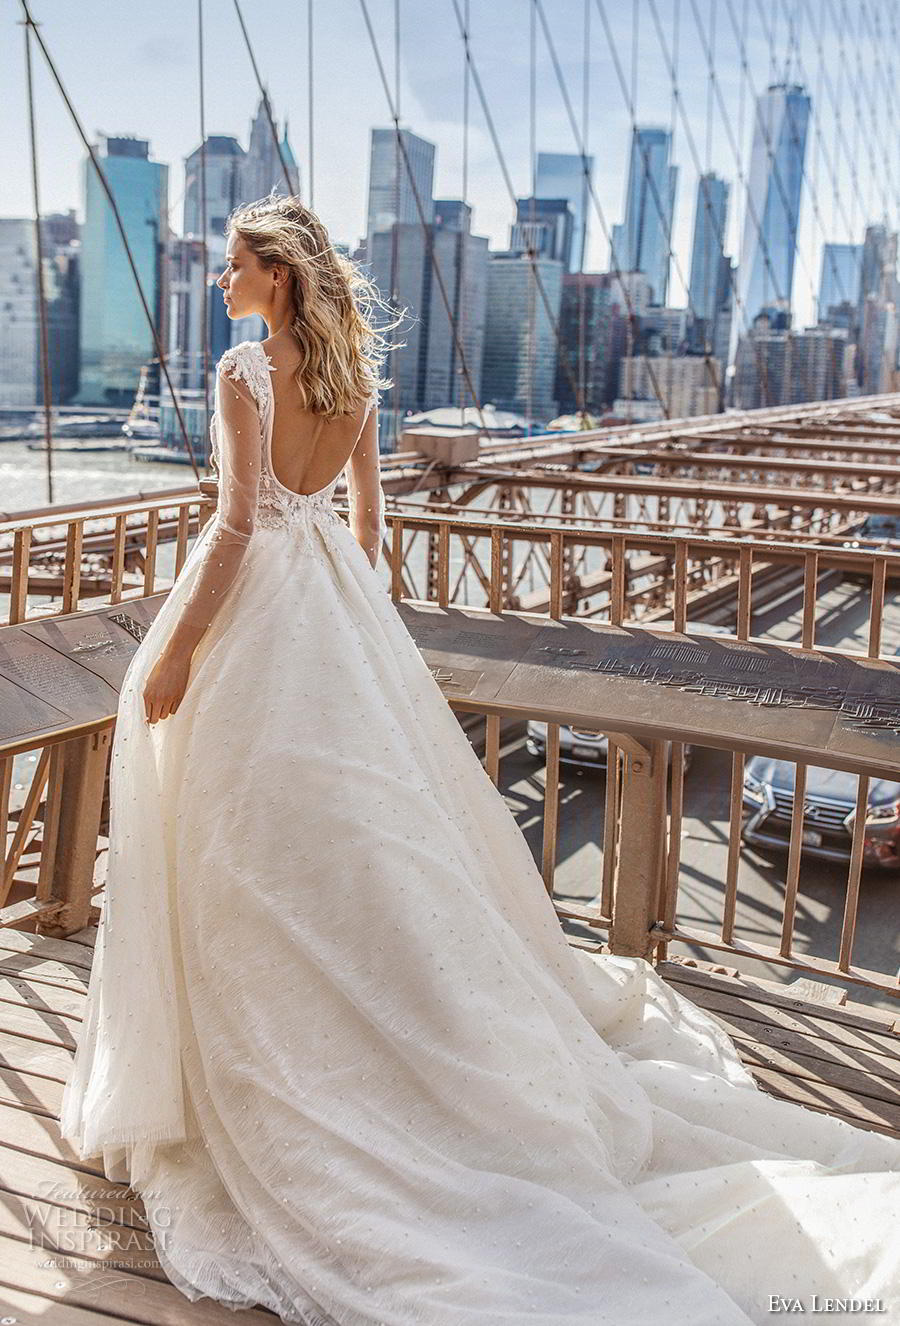 eva lendel 2019 bridal sheer long sleeves deep v neck heavily embellished bodice romantic ball gown a  line wedding dress backless v back long train (7) bv